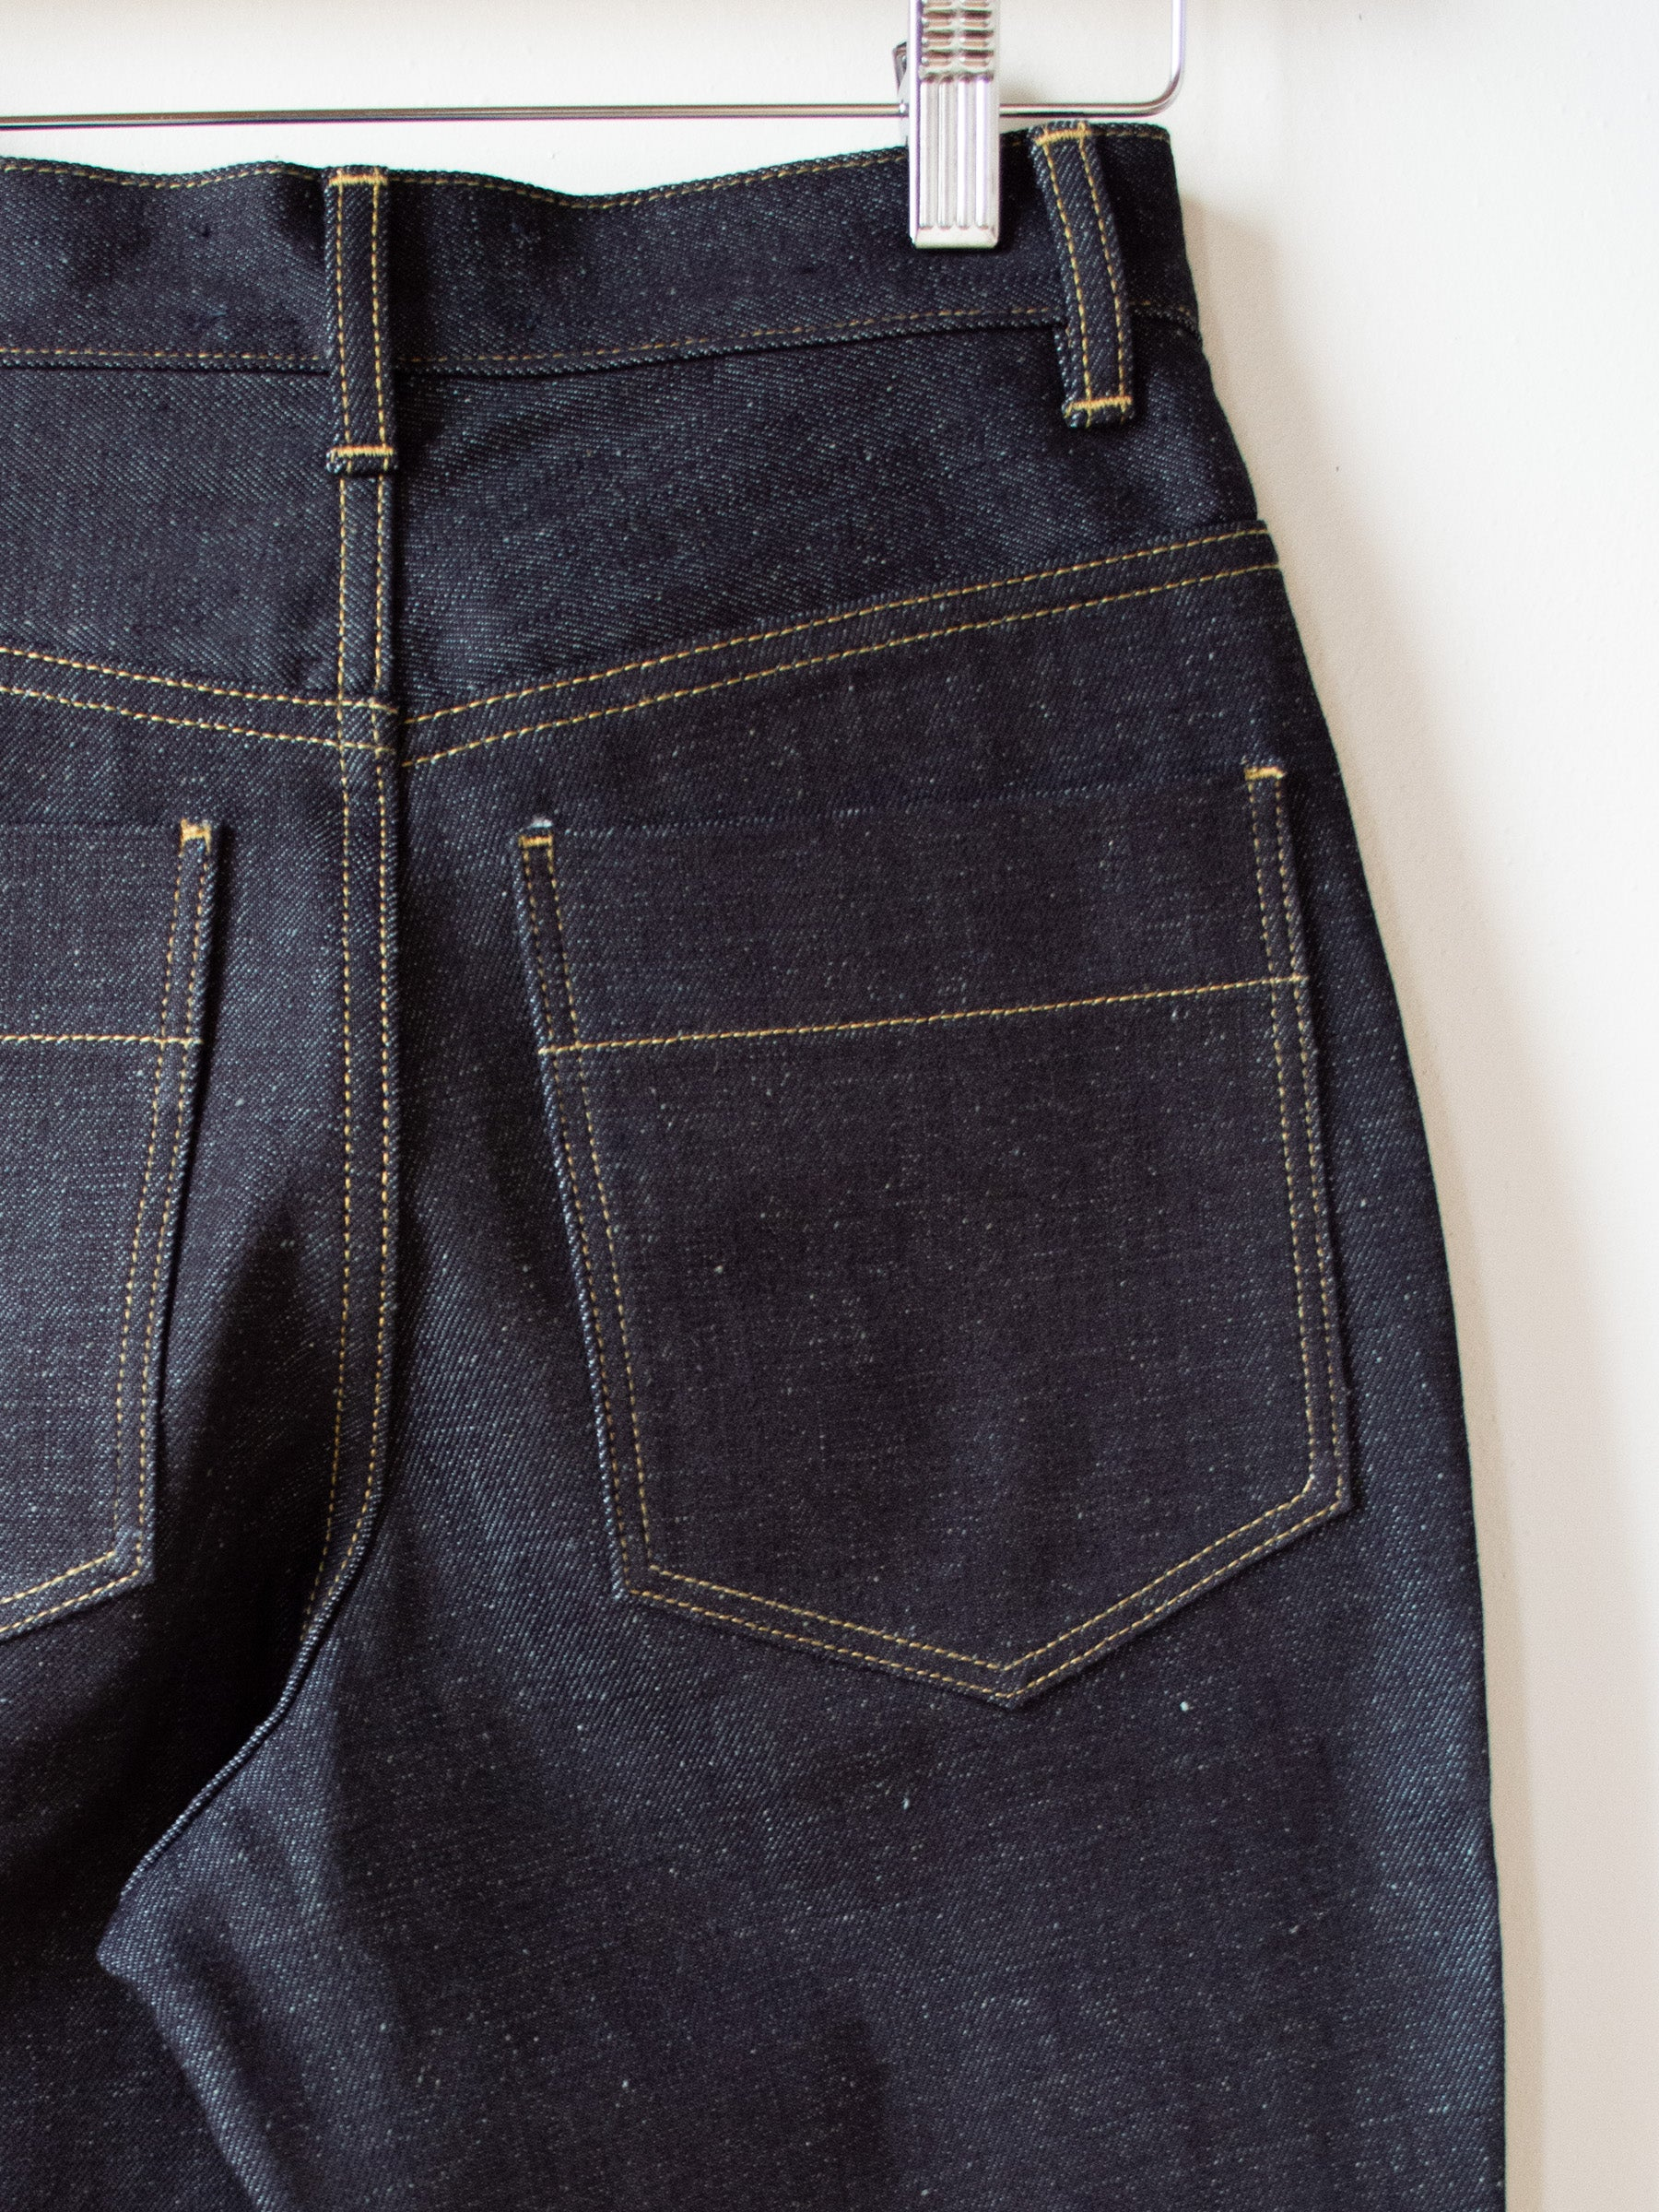 Avanti Selvedge Denim - Indigo